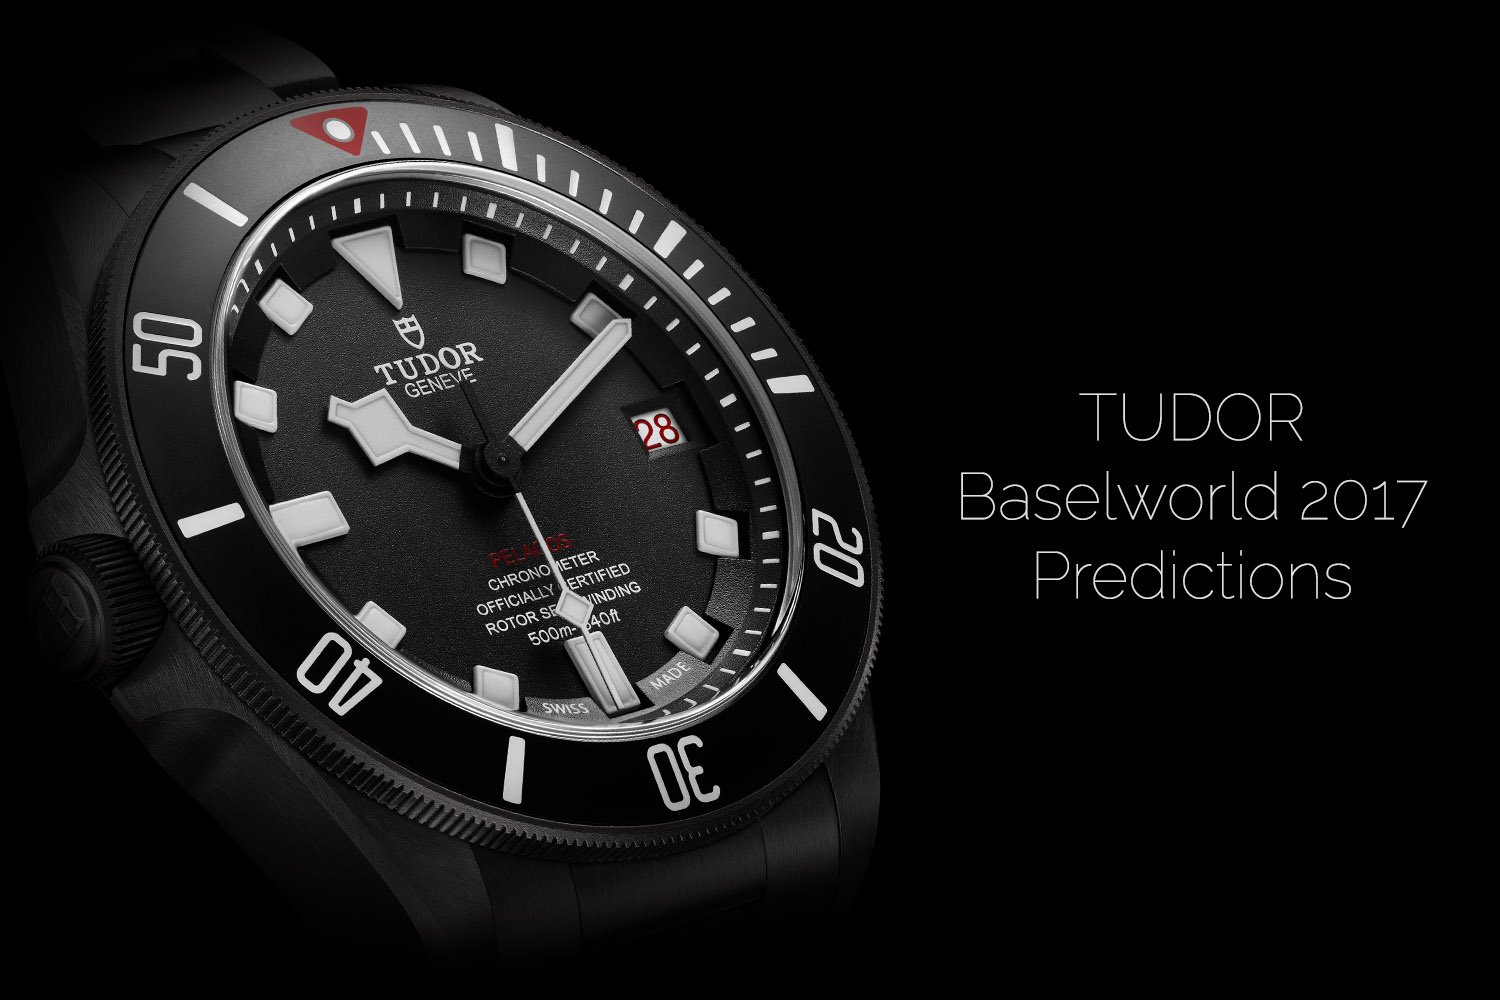 Tudor Baselworld 2017 - Tudor Predictions 2017 - Tudor New Watches 2017